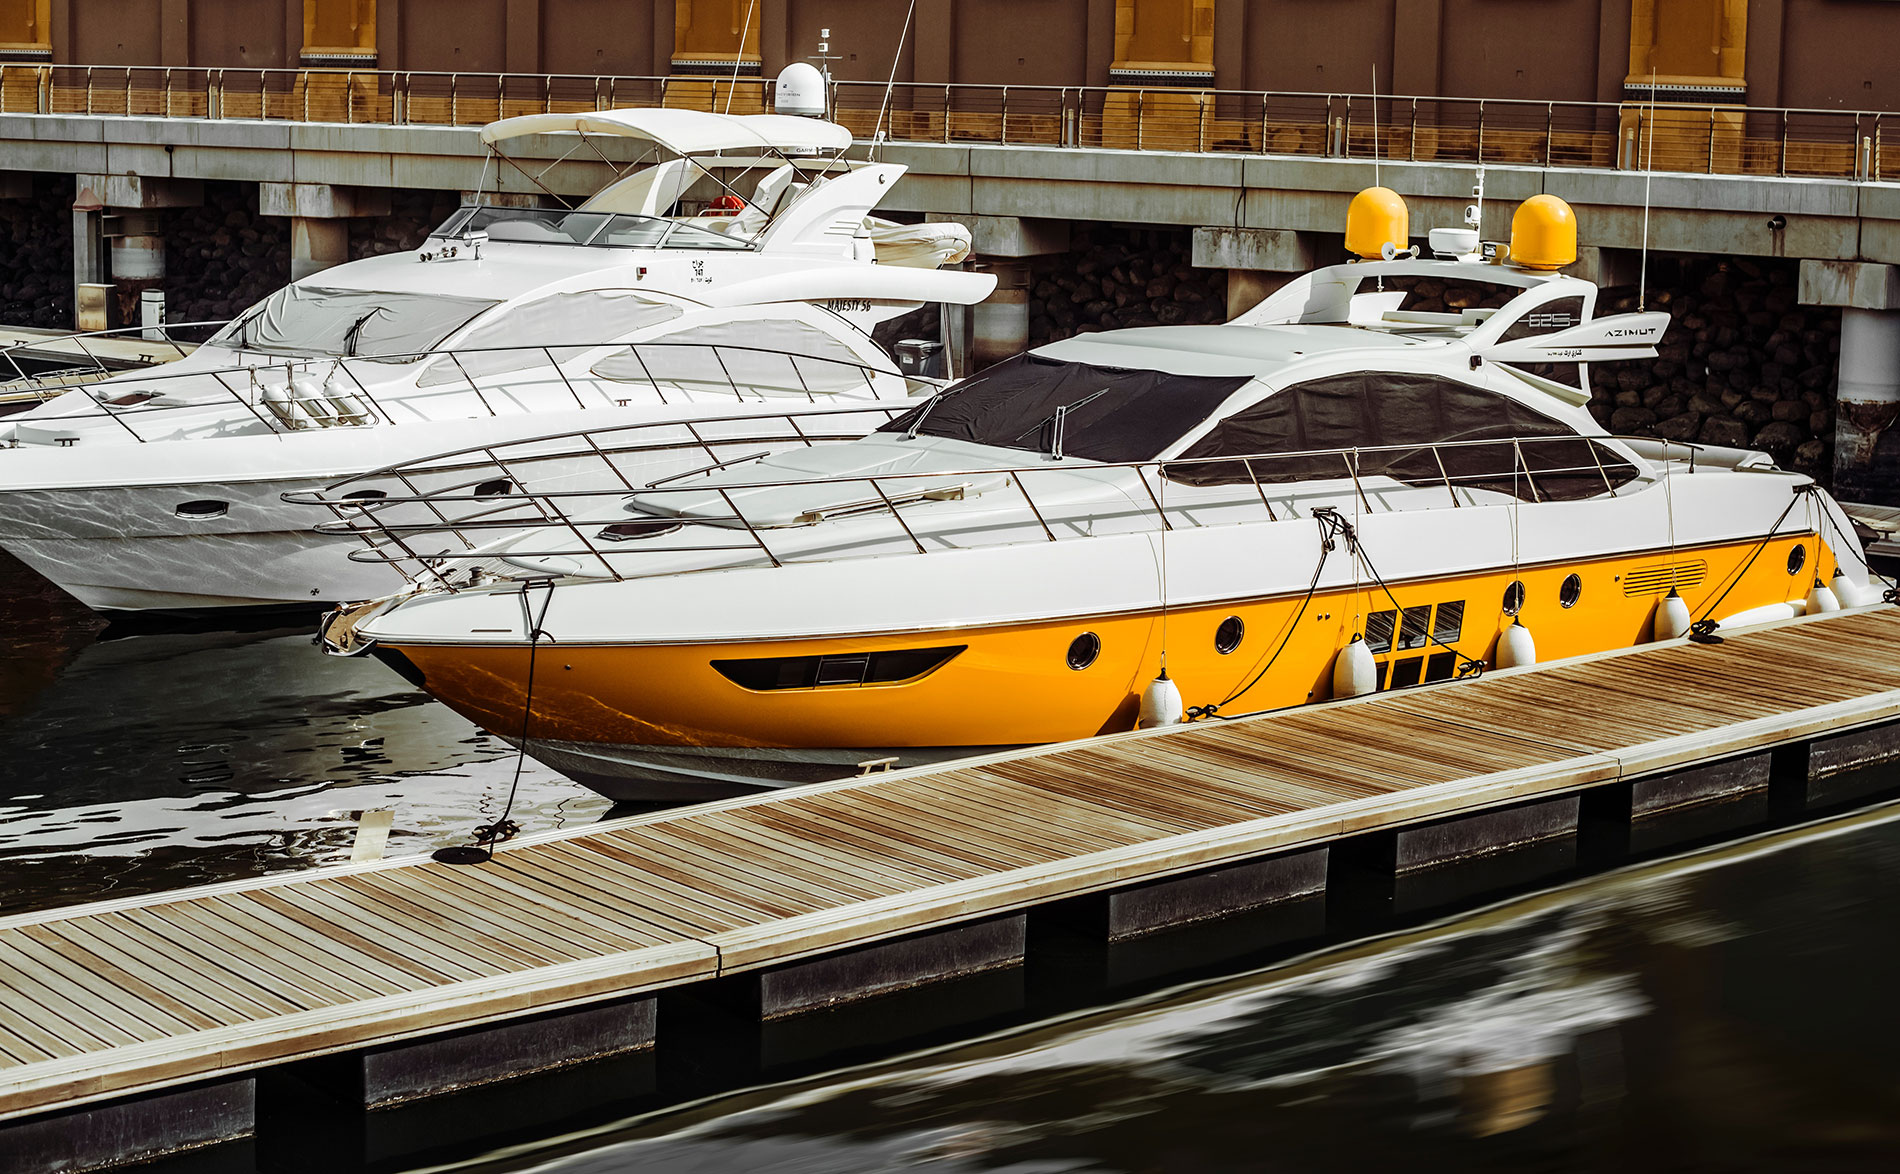 How To Sell A Boat: The Complete Guide | Boat Trader Blog